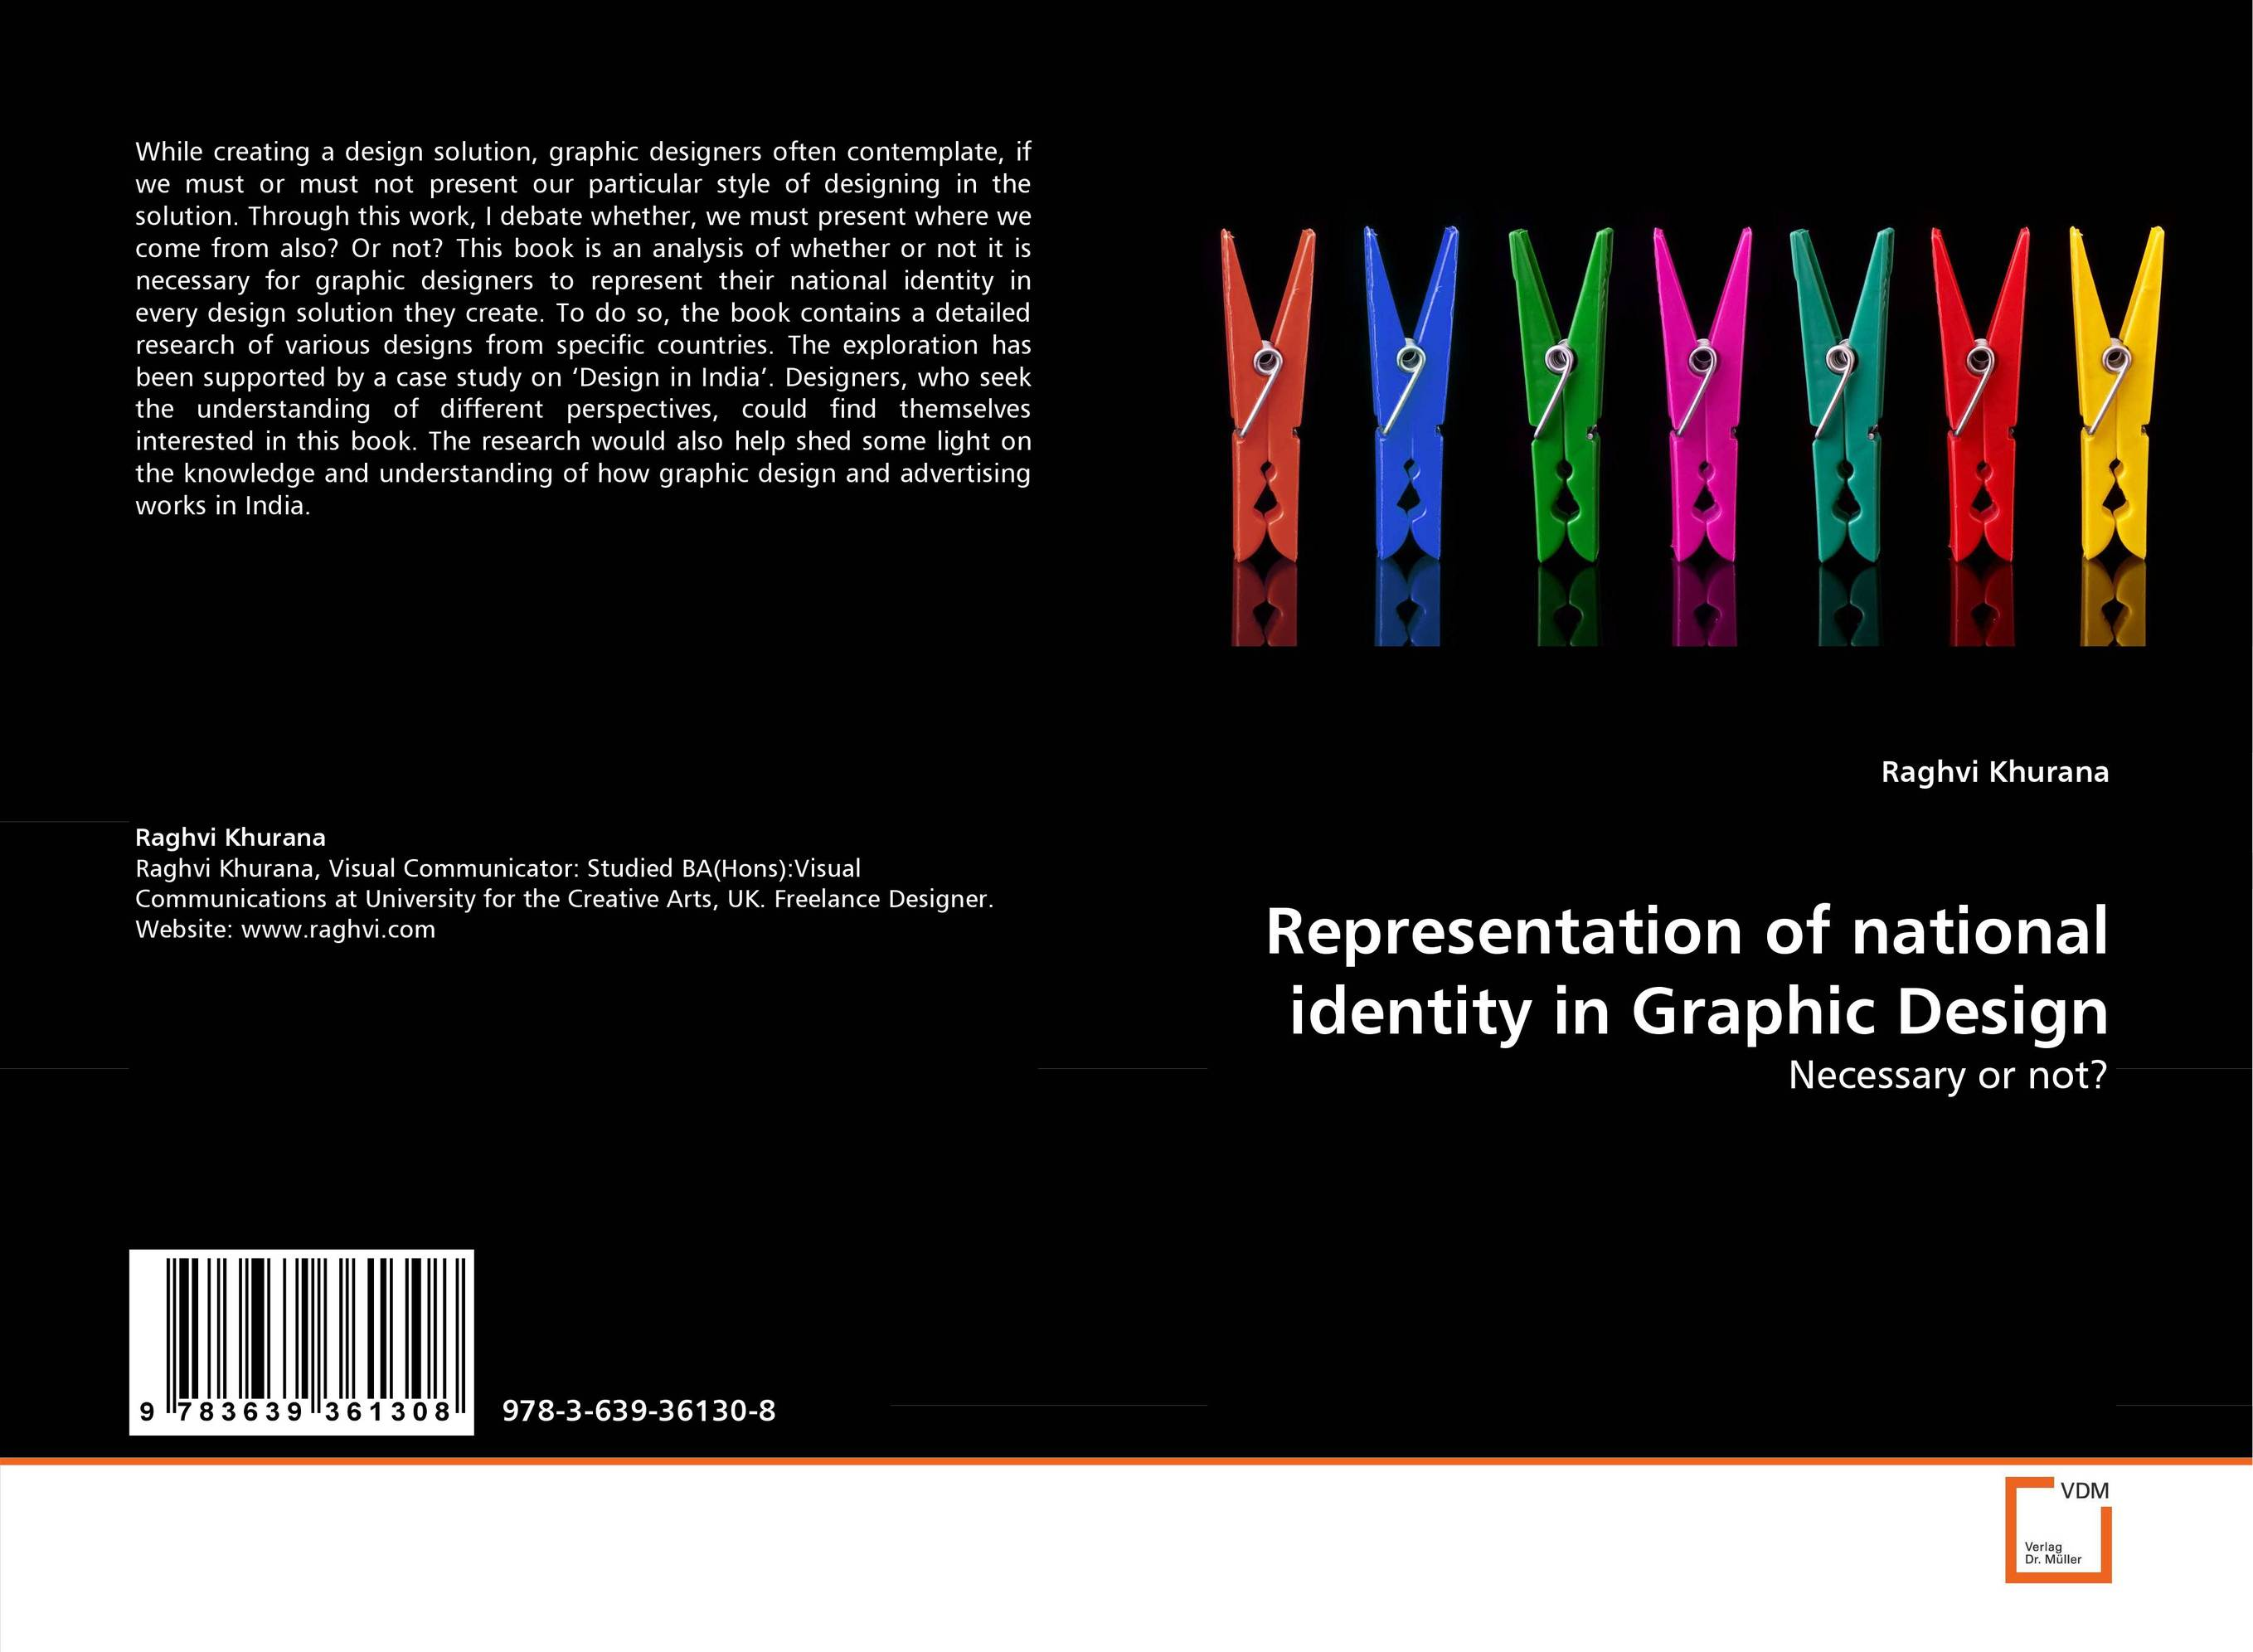 Representation of national identity in Graphic Design